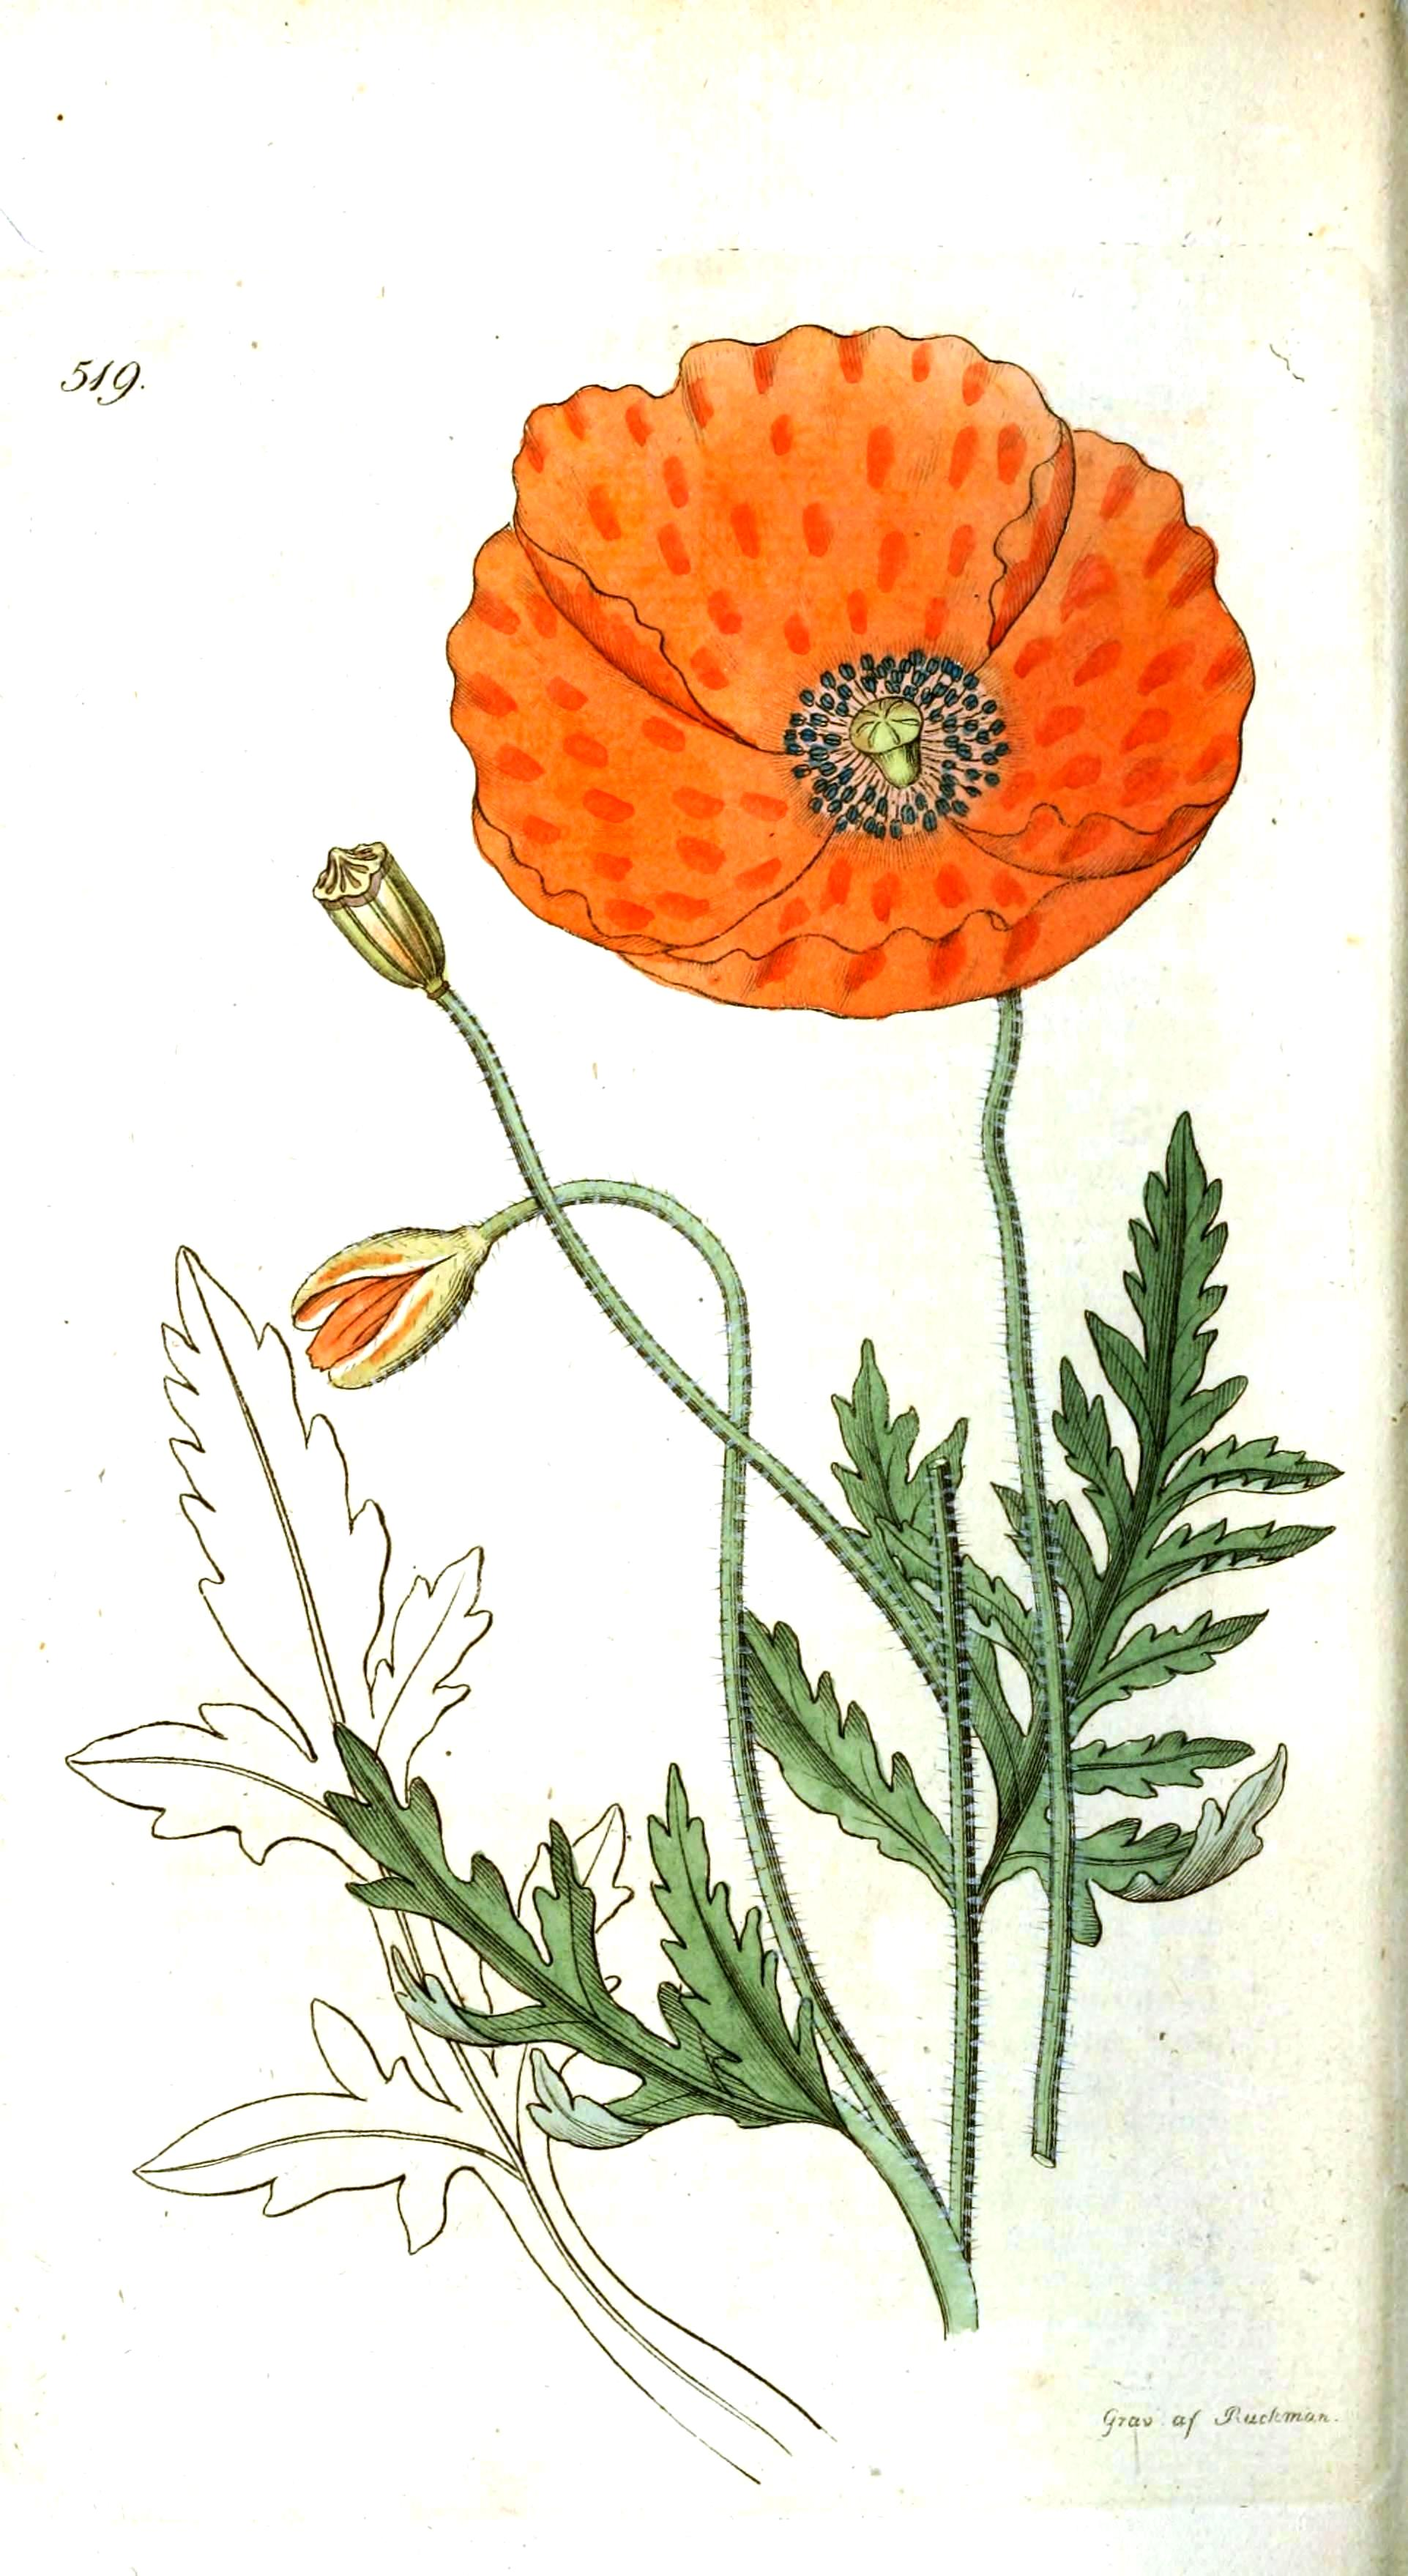 Drawn poppy flower leaf Icelandic Botanical  poppy Icelandic